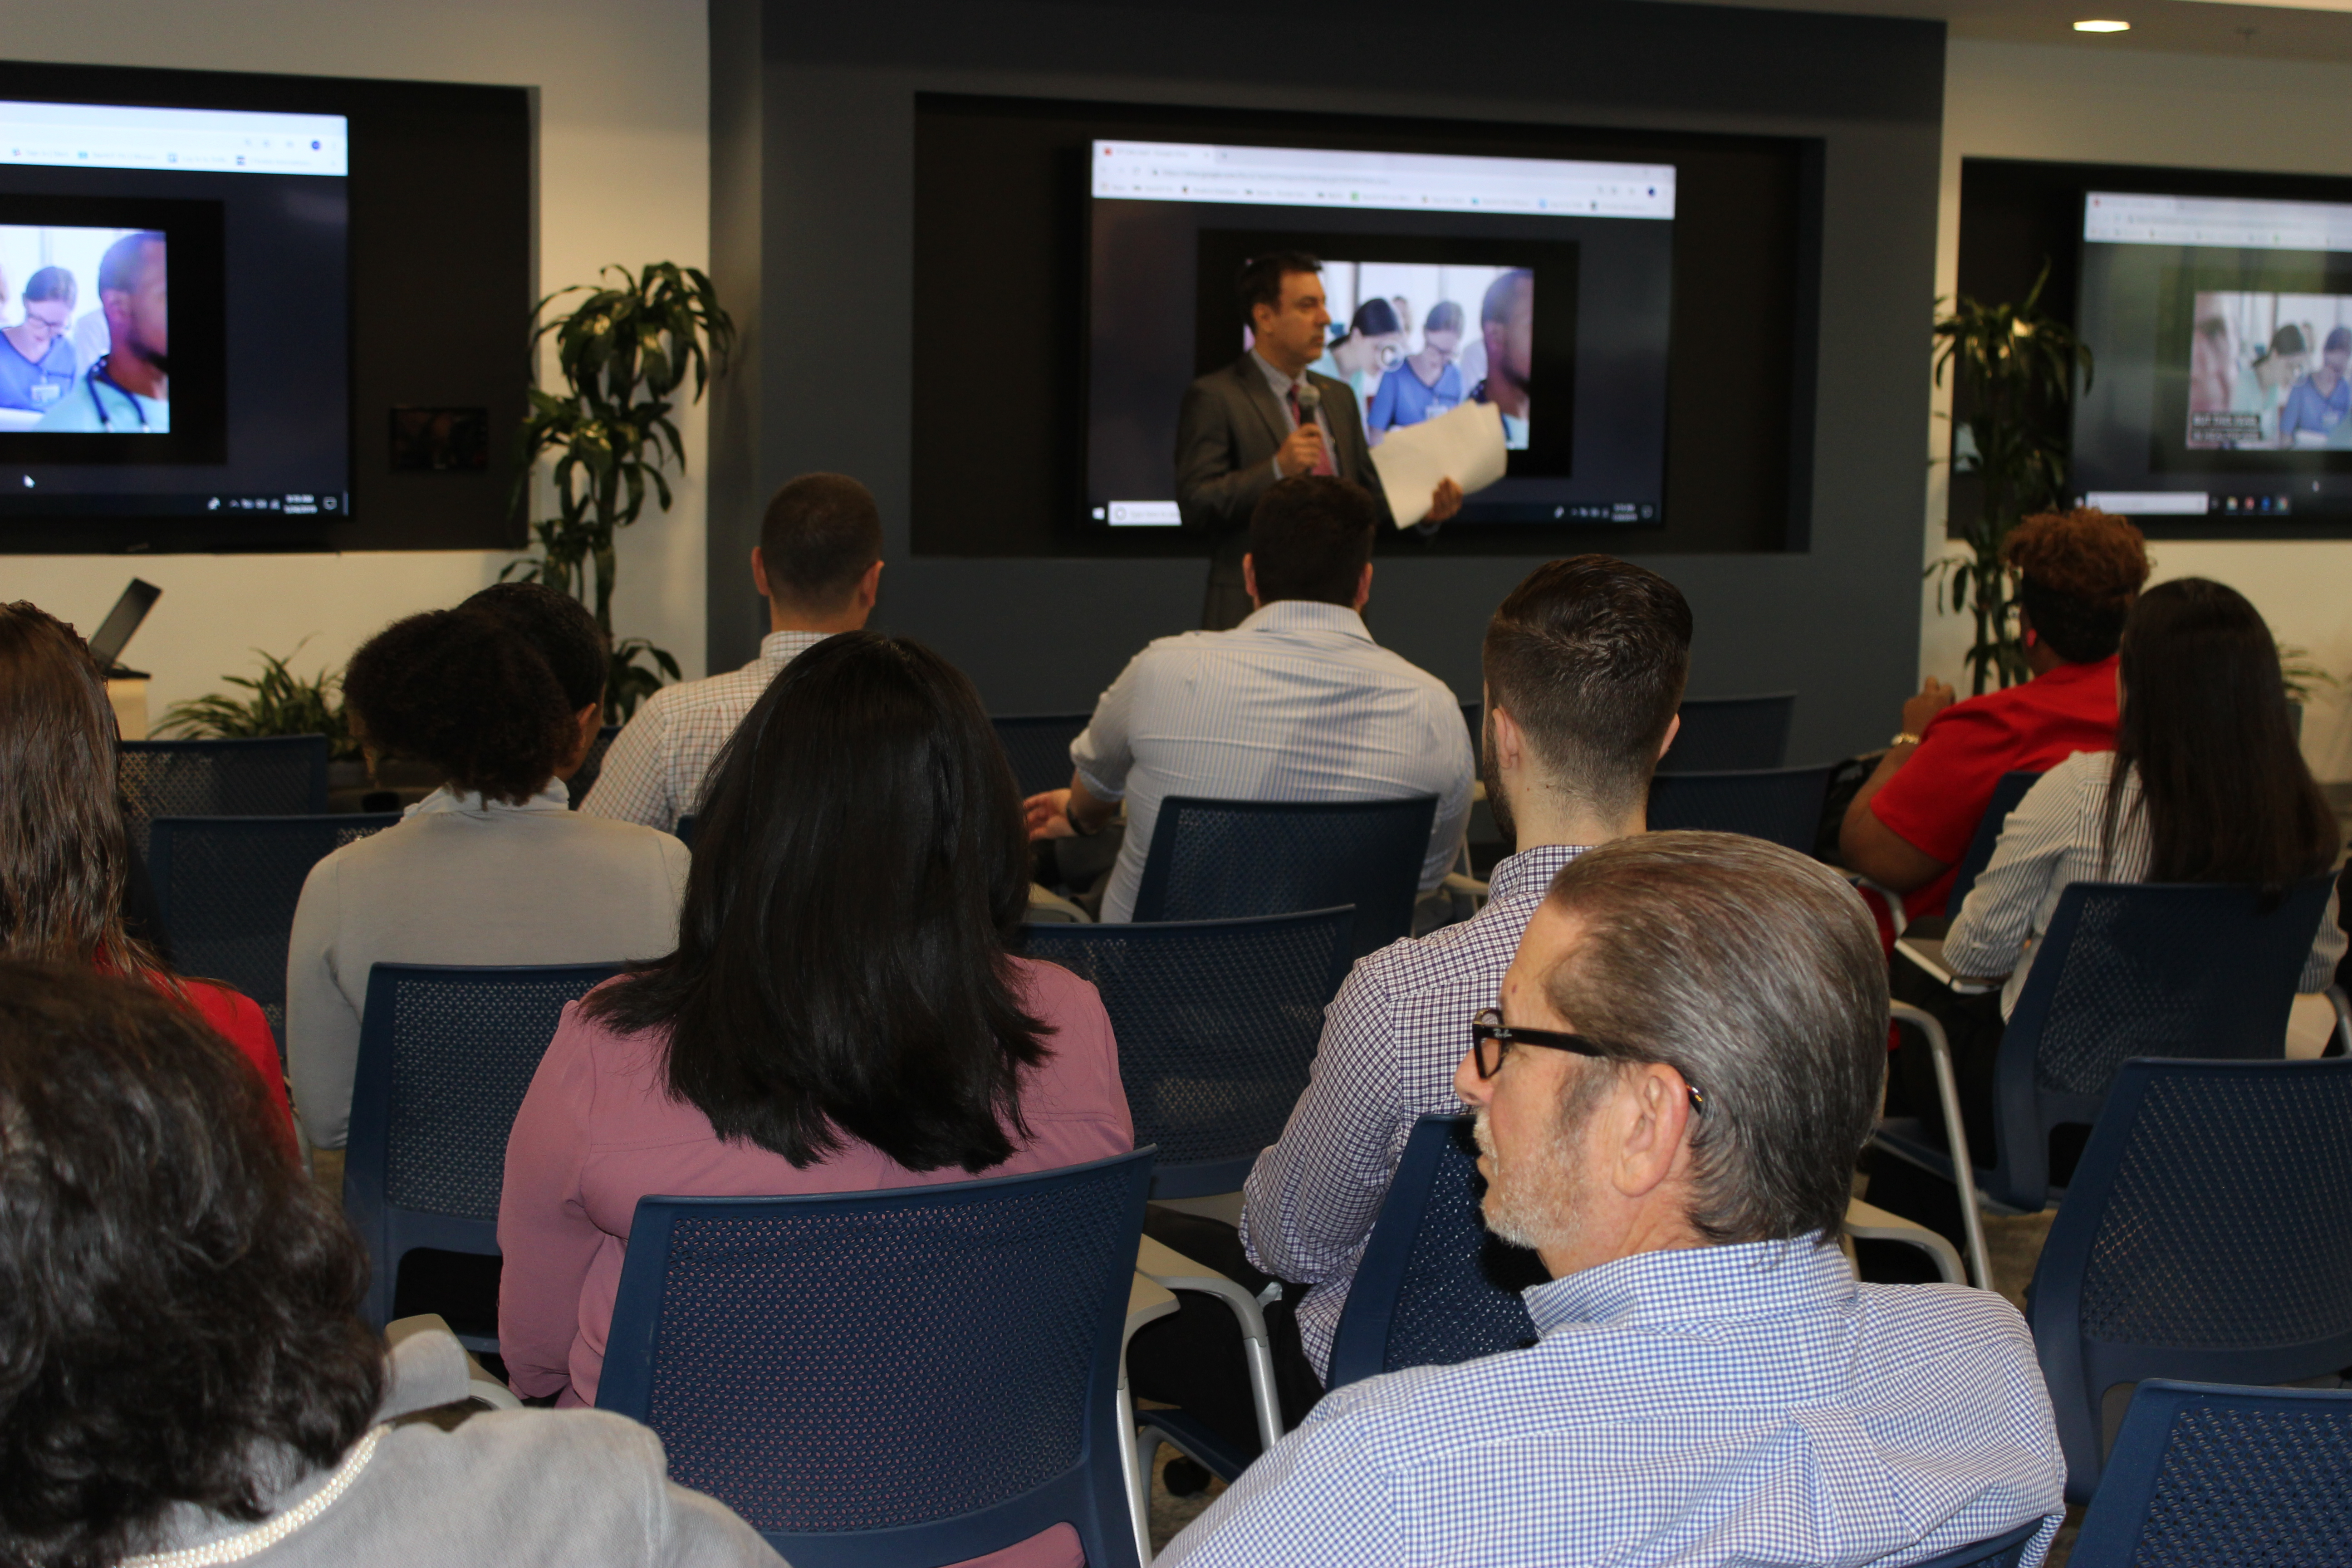 Doral Chamber of Commerce introduces DCC 21st Century Technology event, host explaining to people about technology.